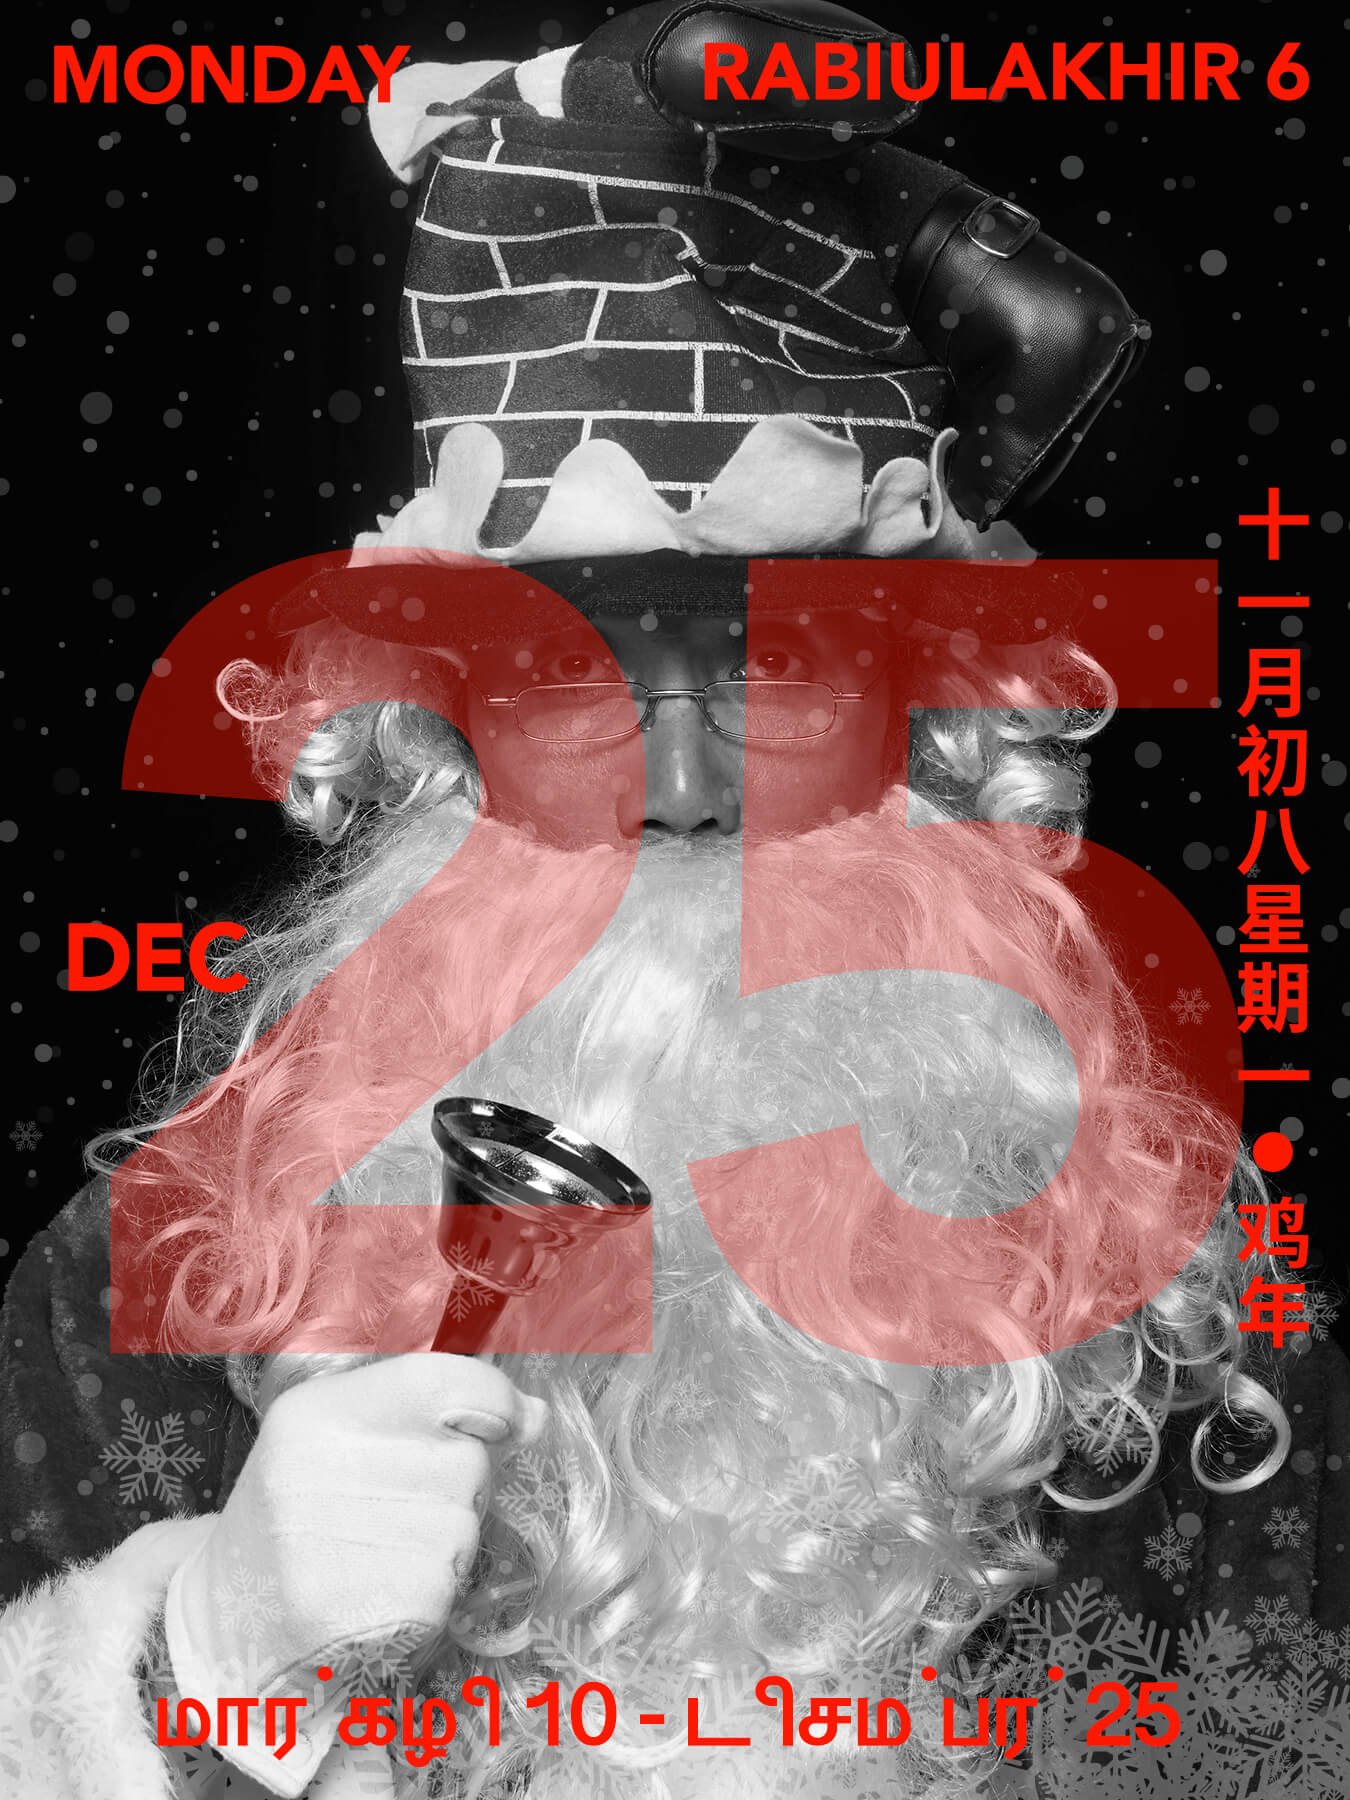 25 Dec 2017 Derong is dressed as Santa